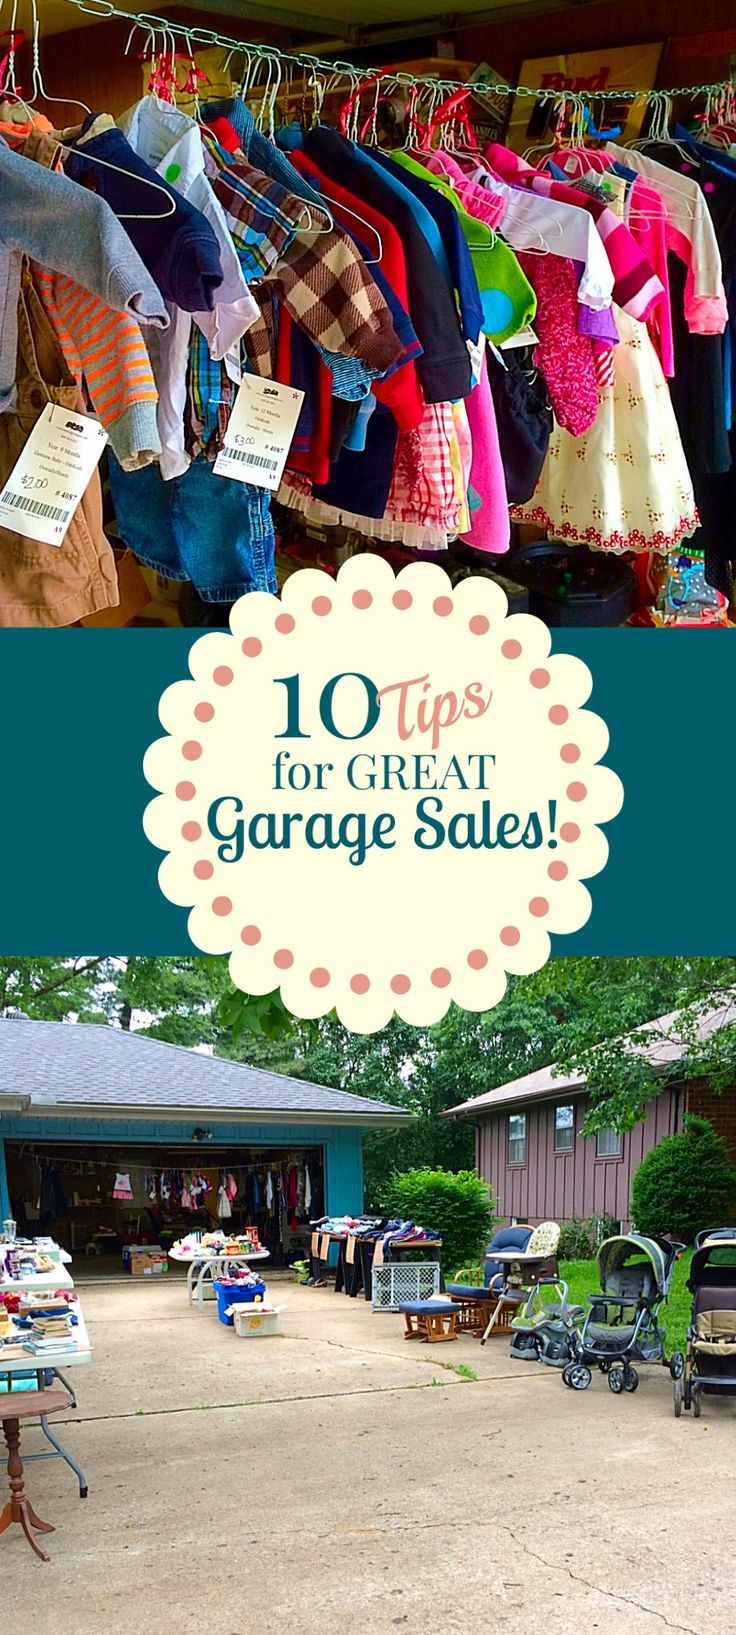 Organize Your Clothes 10 Creative And Effective Ways To Store And Hang Your Clothes: 36 Best Yard Sale Tips Images On Pinterest